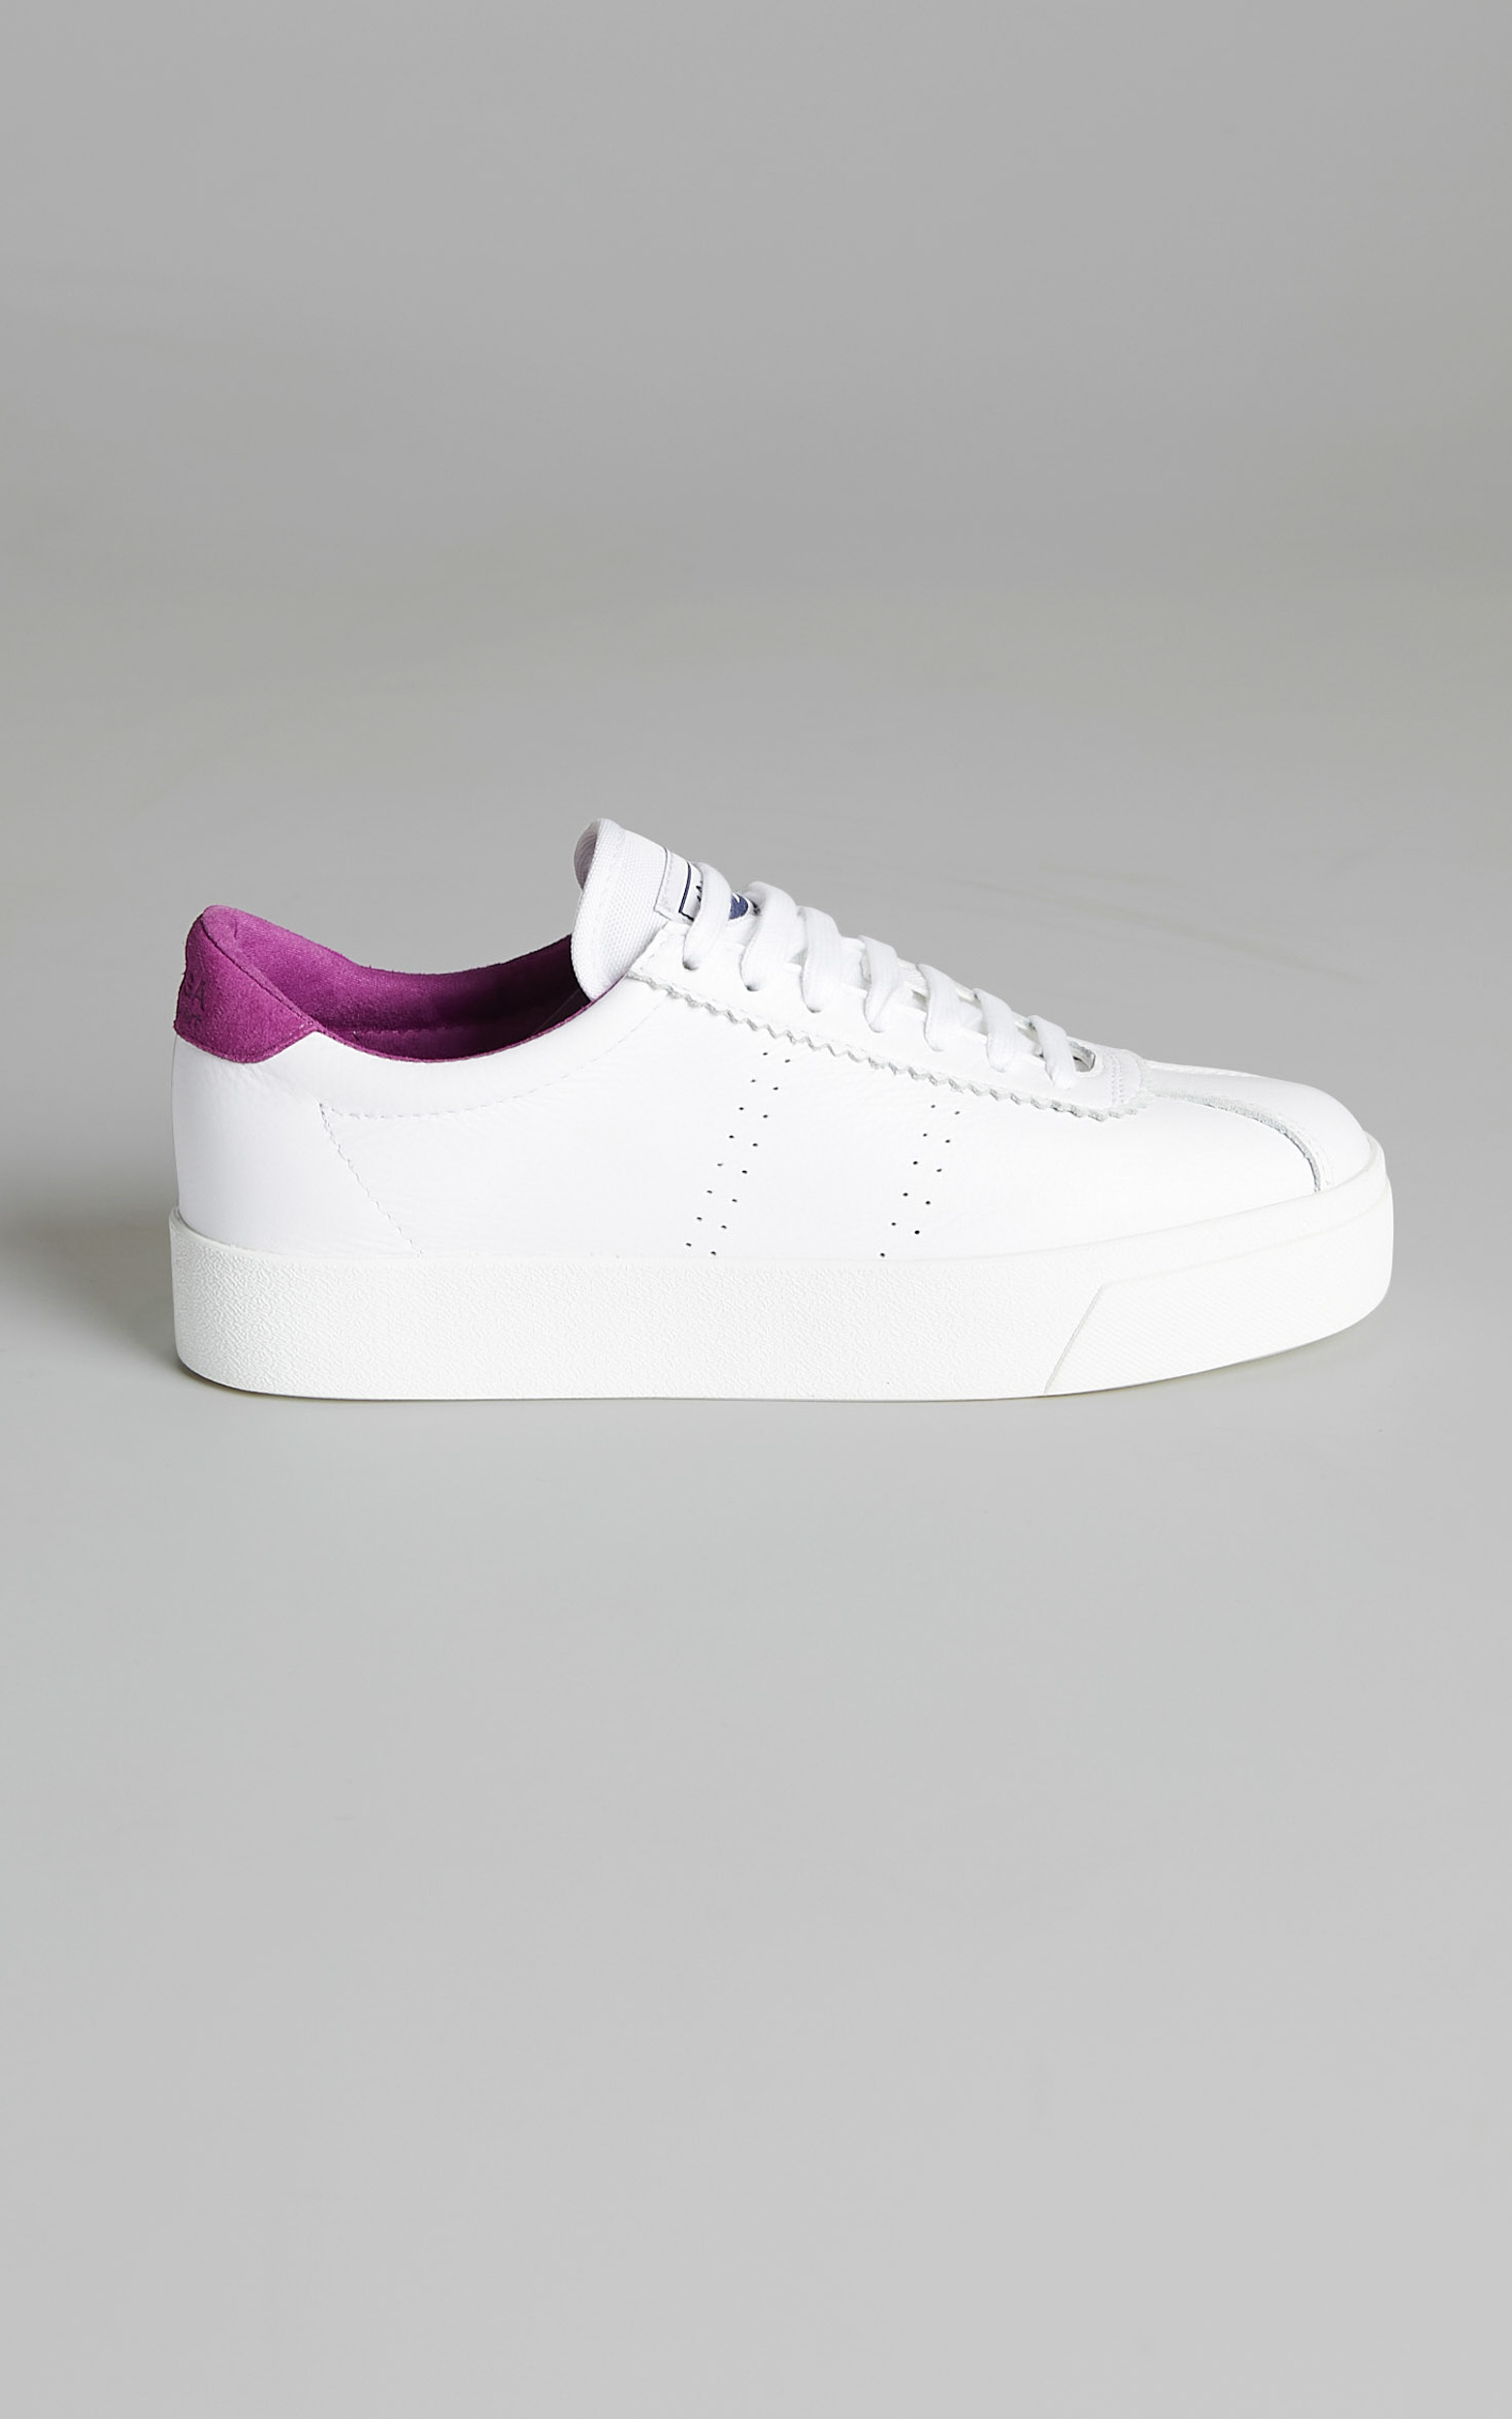 Superga - 2854 Club S 3 Leather Sneakers in White Fuchsia - 05, WHT1, hi-res image number null